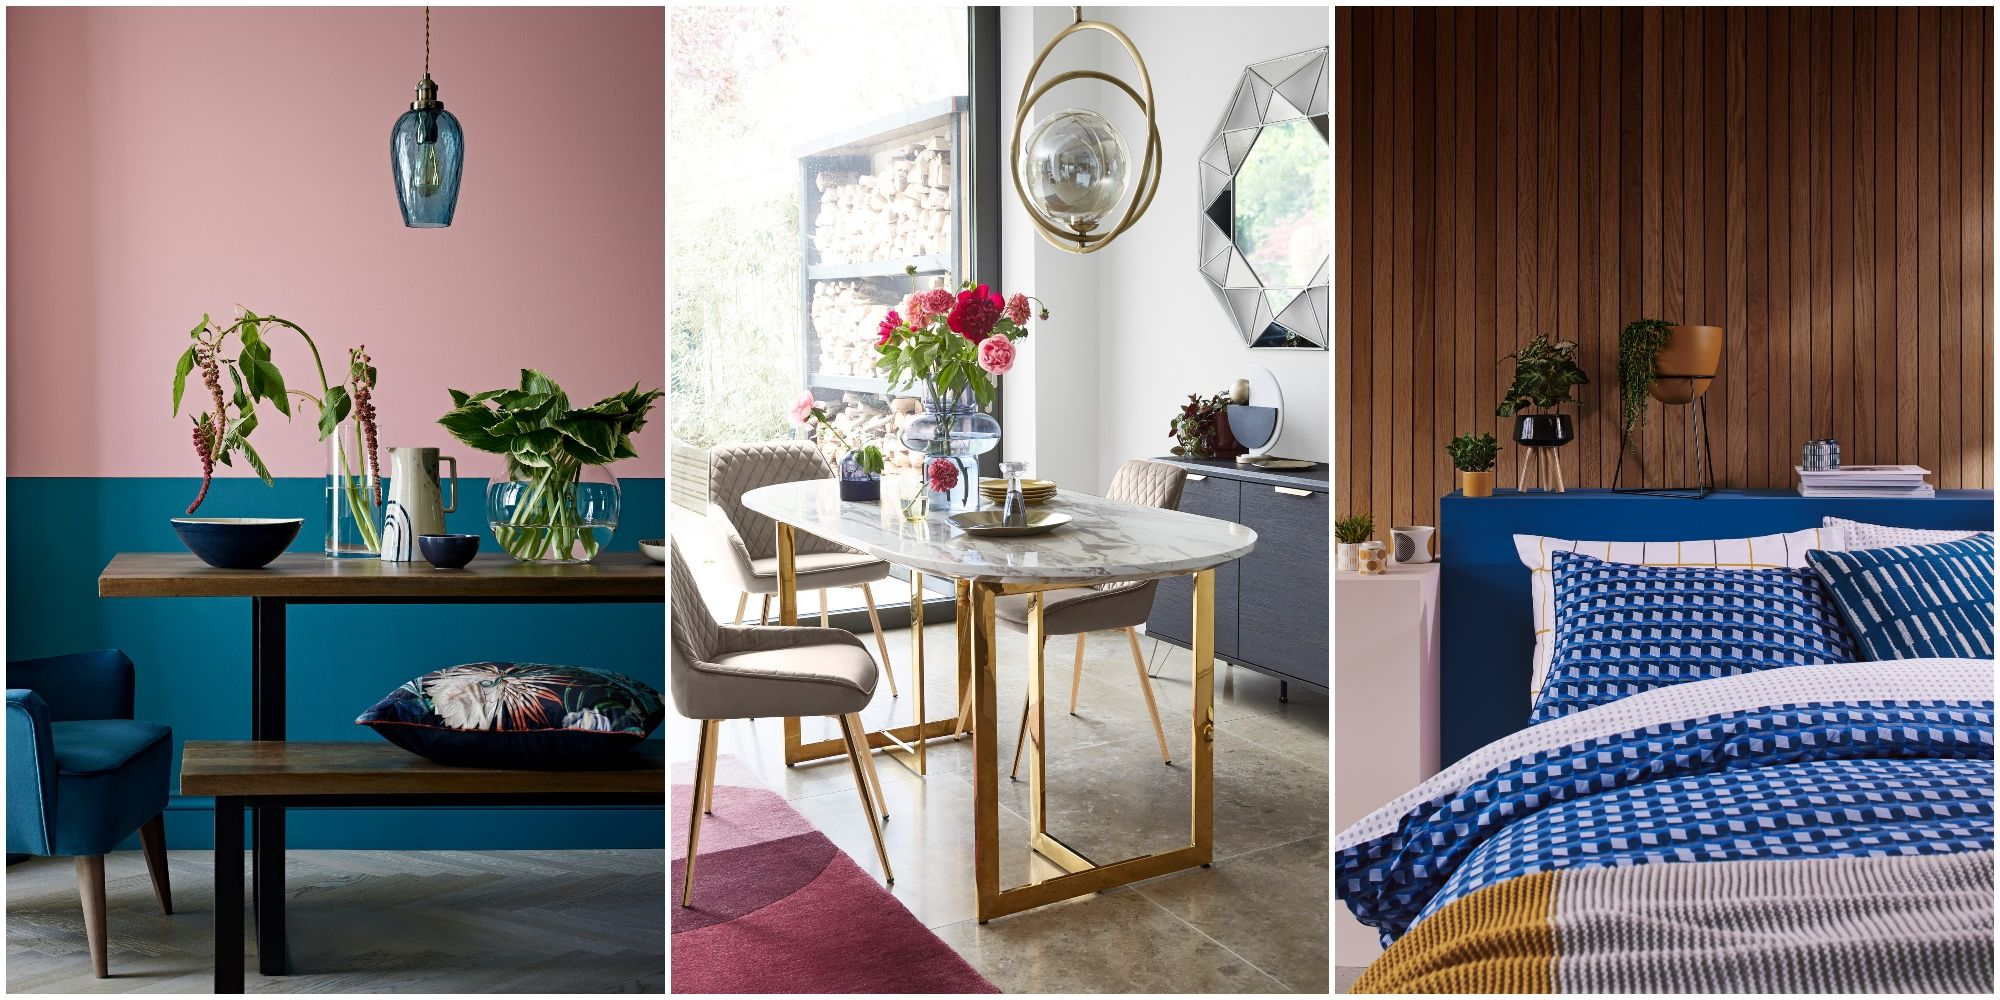 10 of the hottest autumn/winter 2019 interior design trends for your home